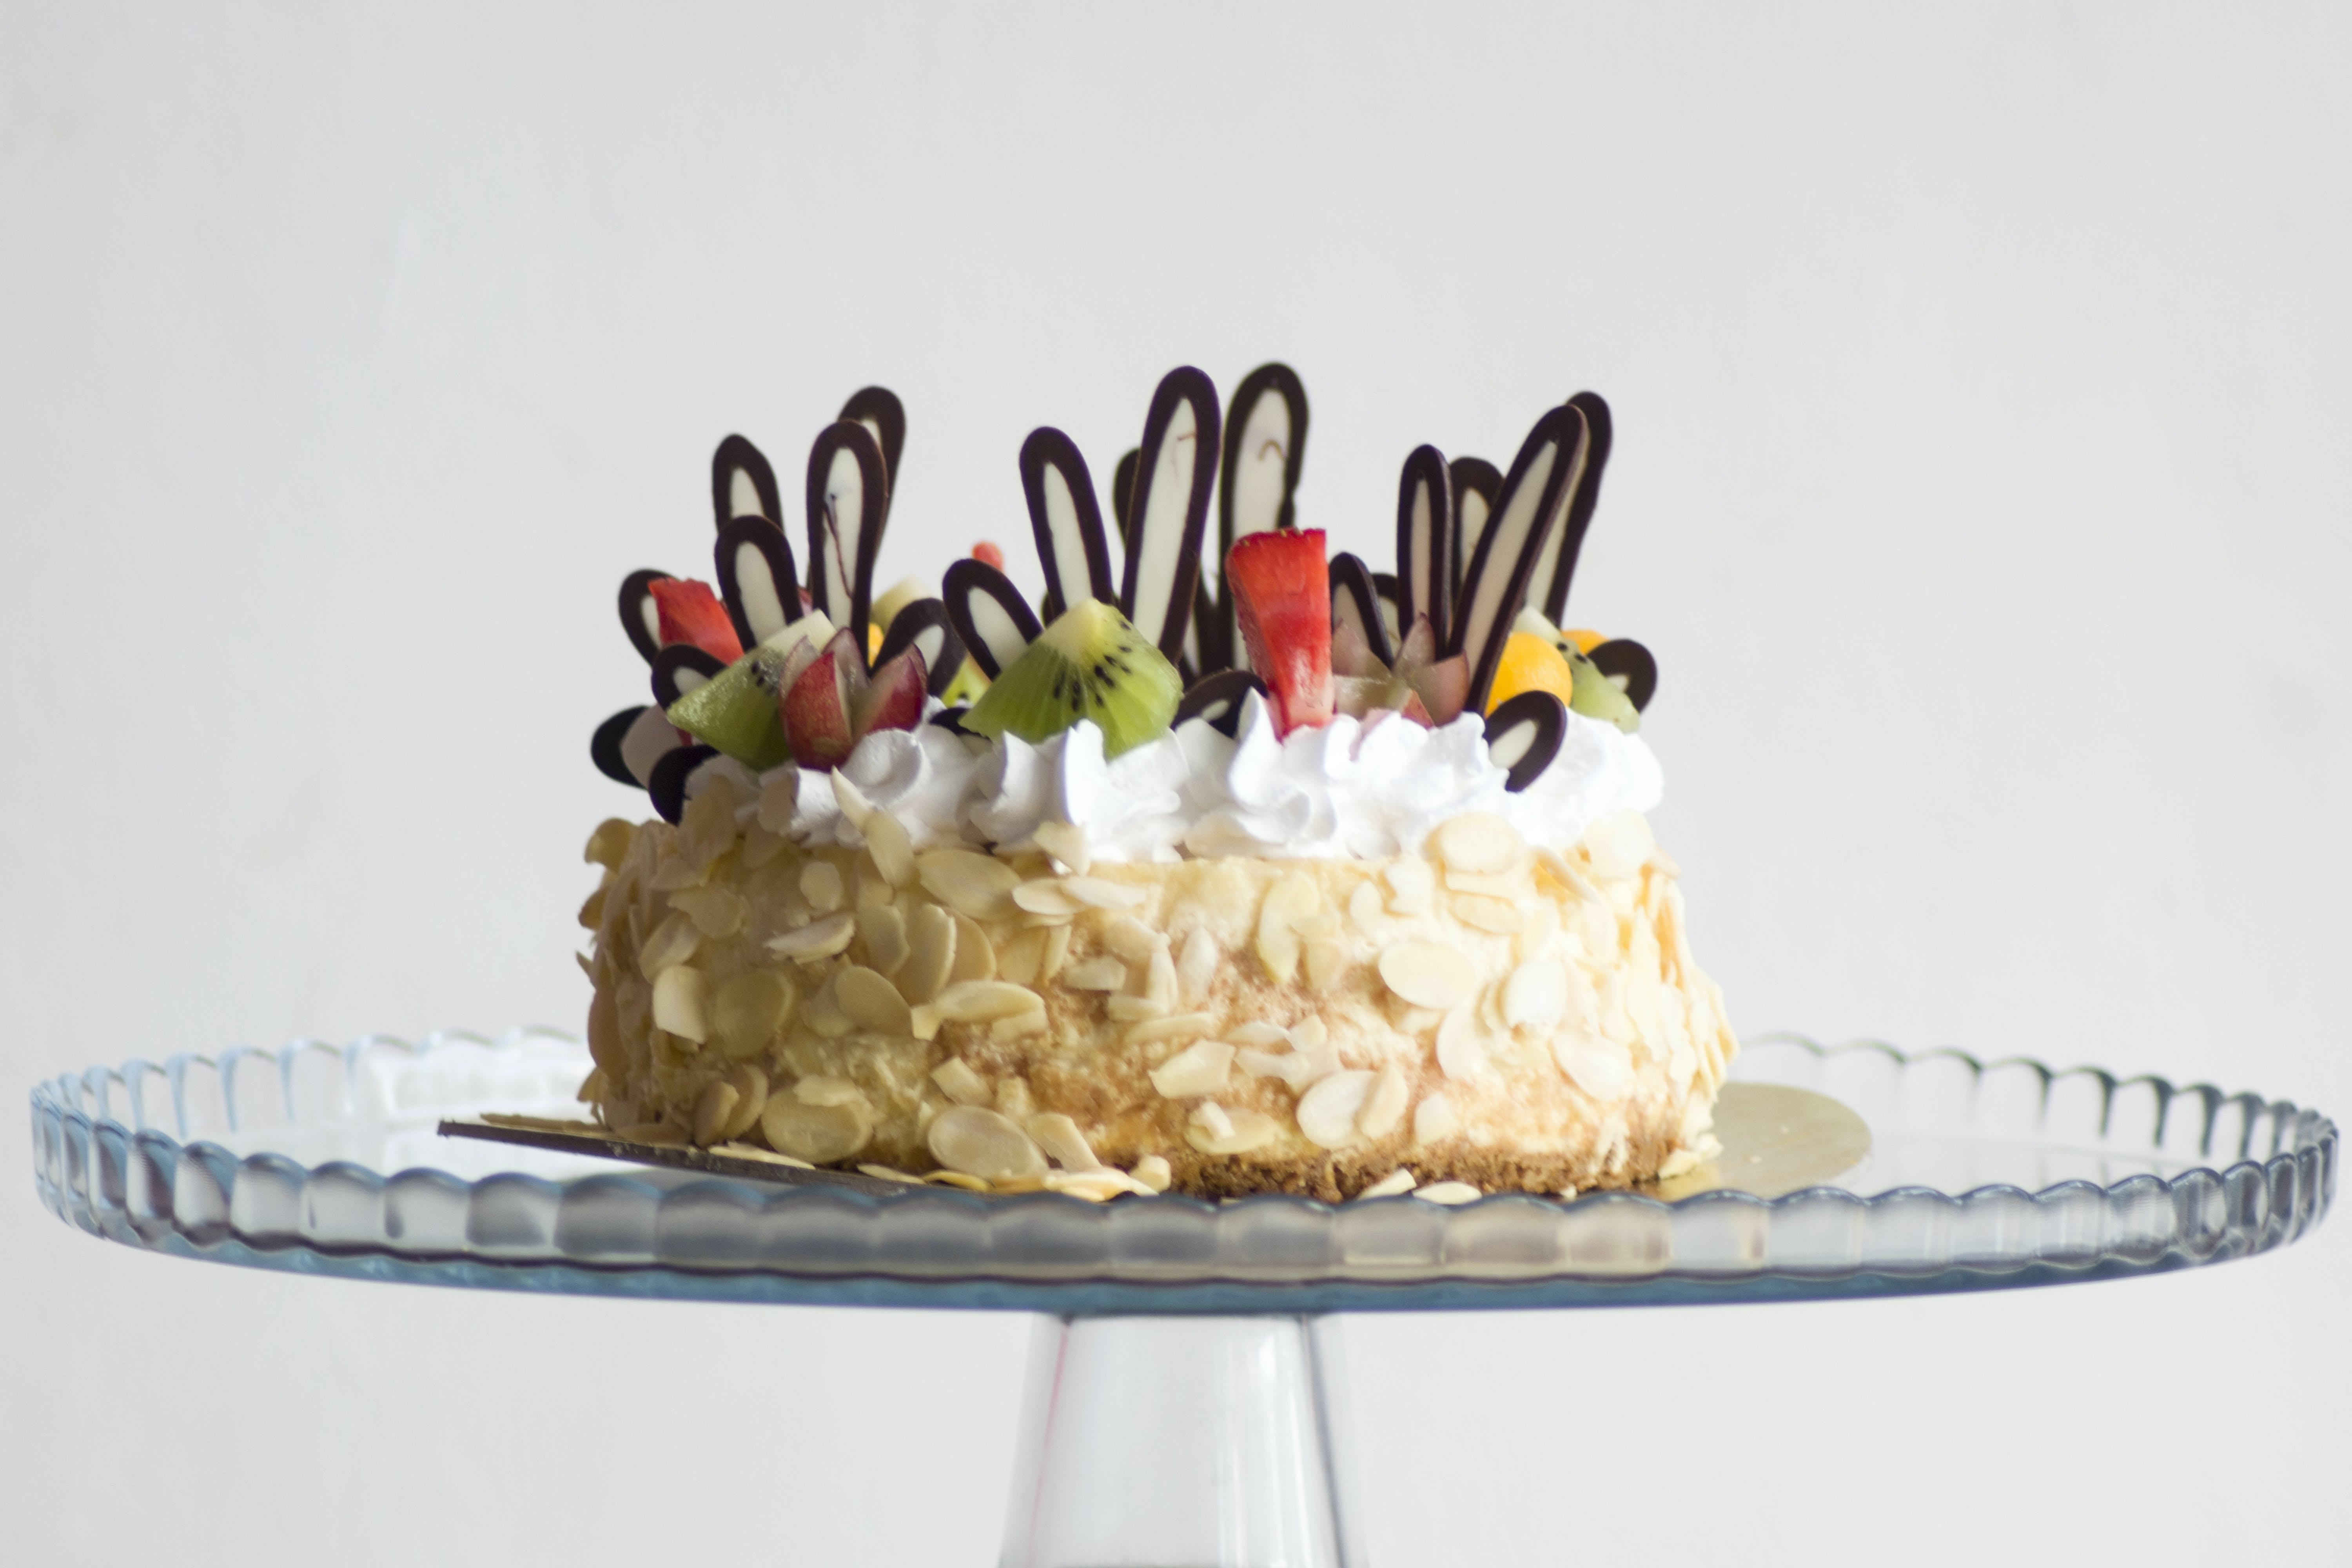 Photo of Brown and White Icing Covered Cake With Kiwi